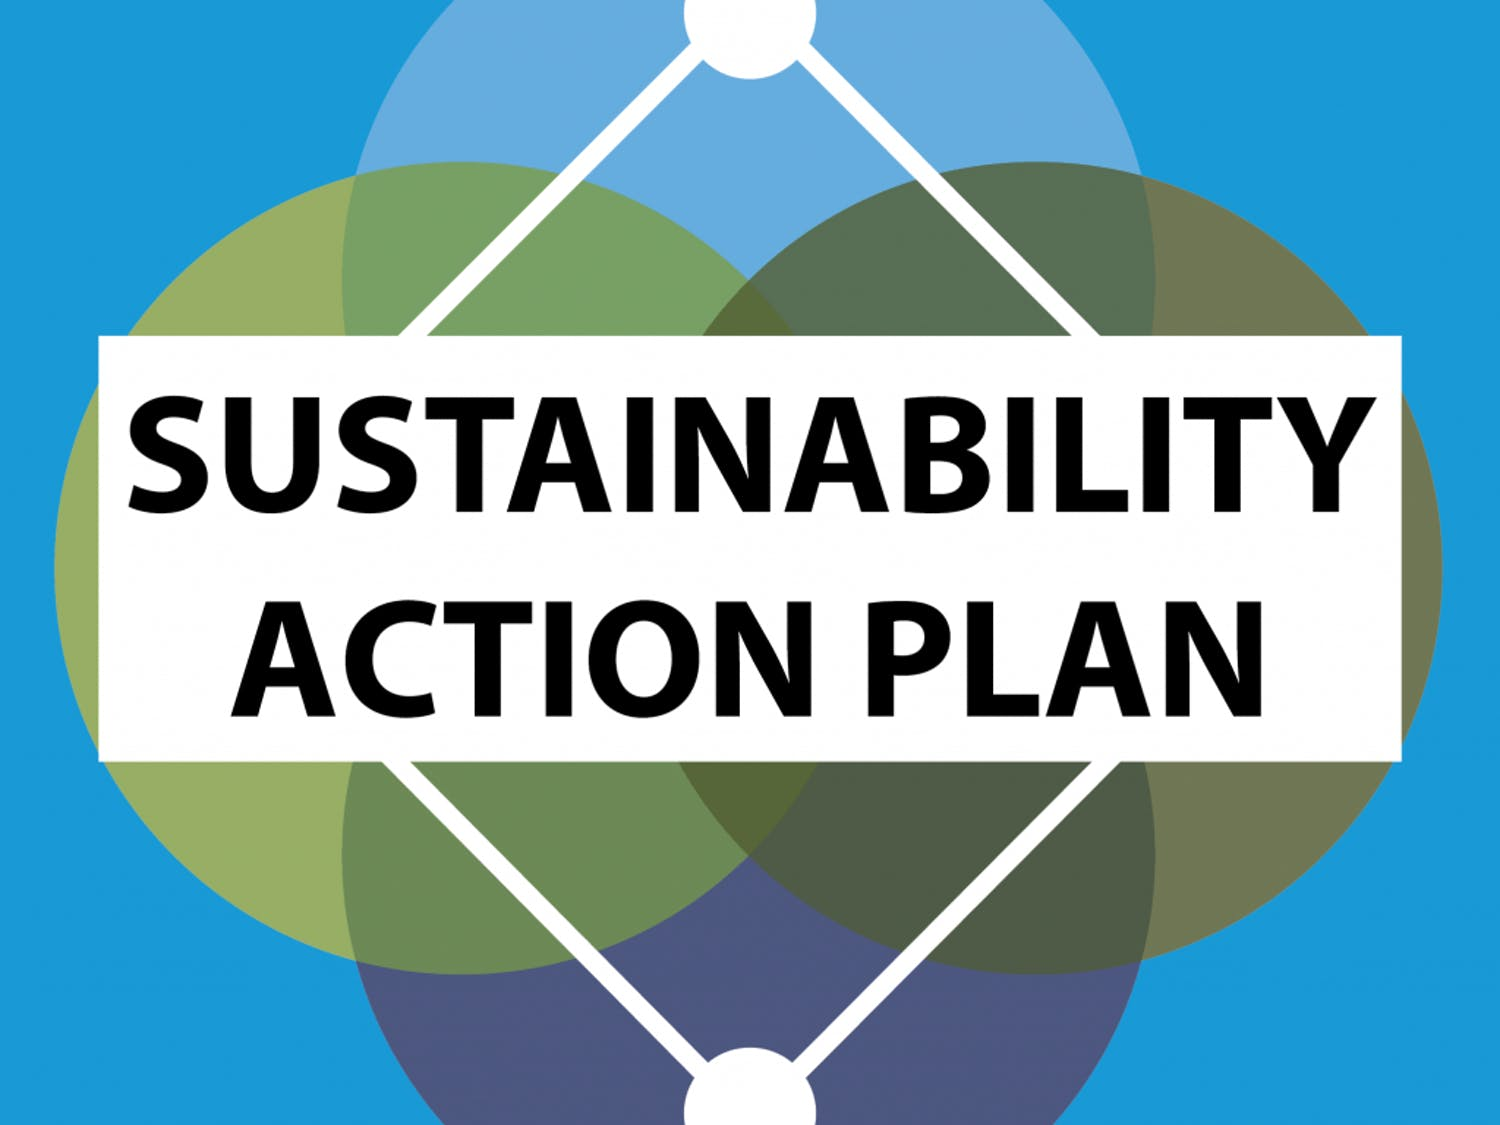 Western Washington University's Sustainability Action Plan was adopted in 2017. Western's SAP was initiated to identify goals and strategies to keep Western at the forefront of sustainable universities. // Photo courtesy of WWU Sustainability Office